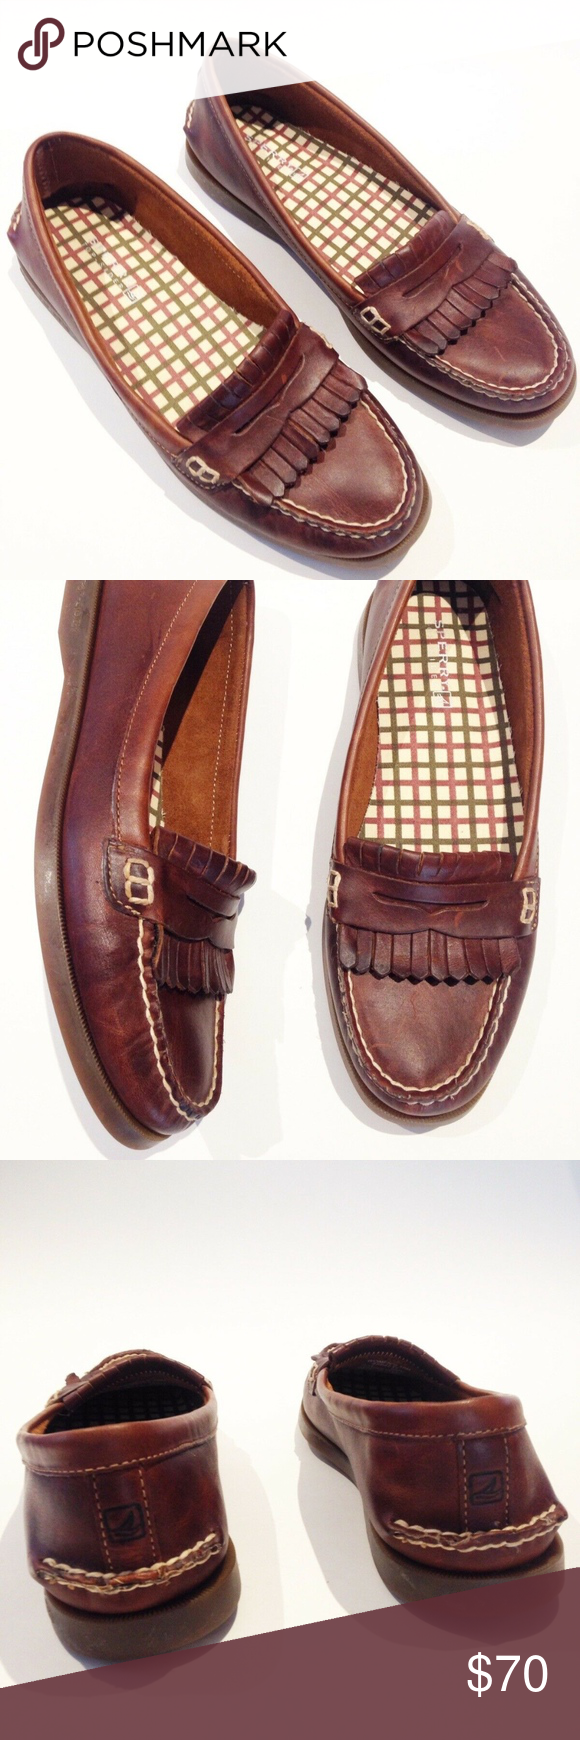 ce0b53ebf35 SPERRY AVERY PENNY LOAFERS MOC BOAT SHOES flat 10 Sperry Top Sider Womens  size 10 Avery